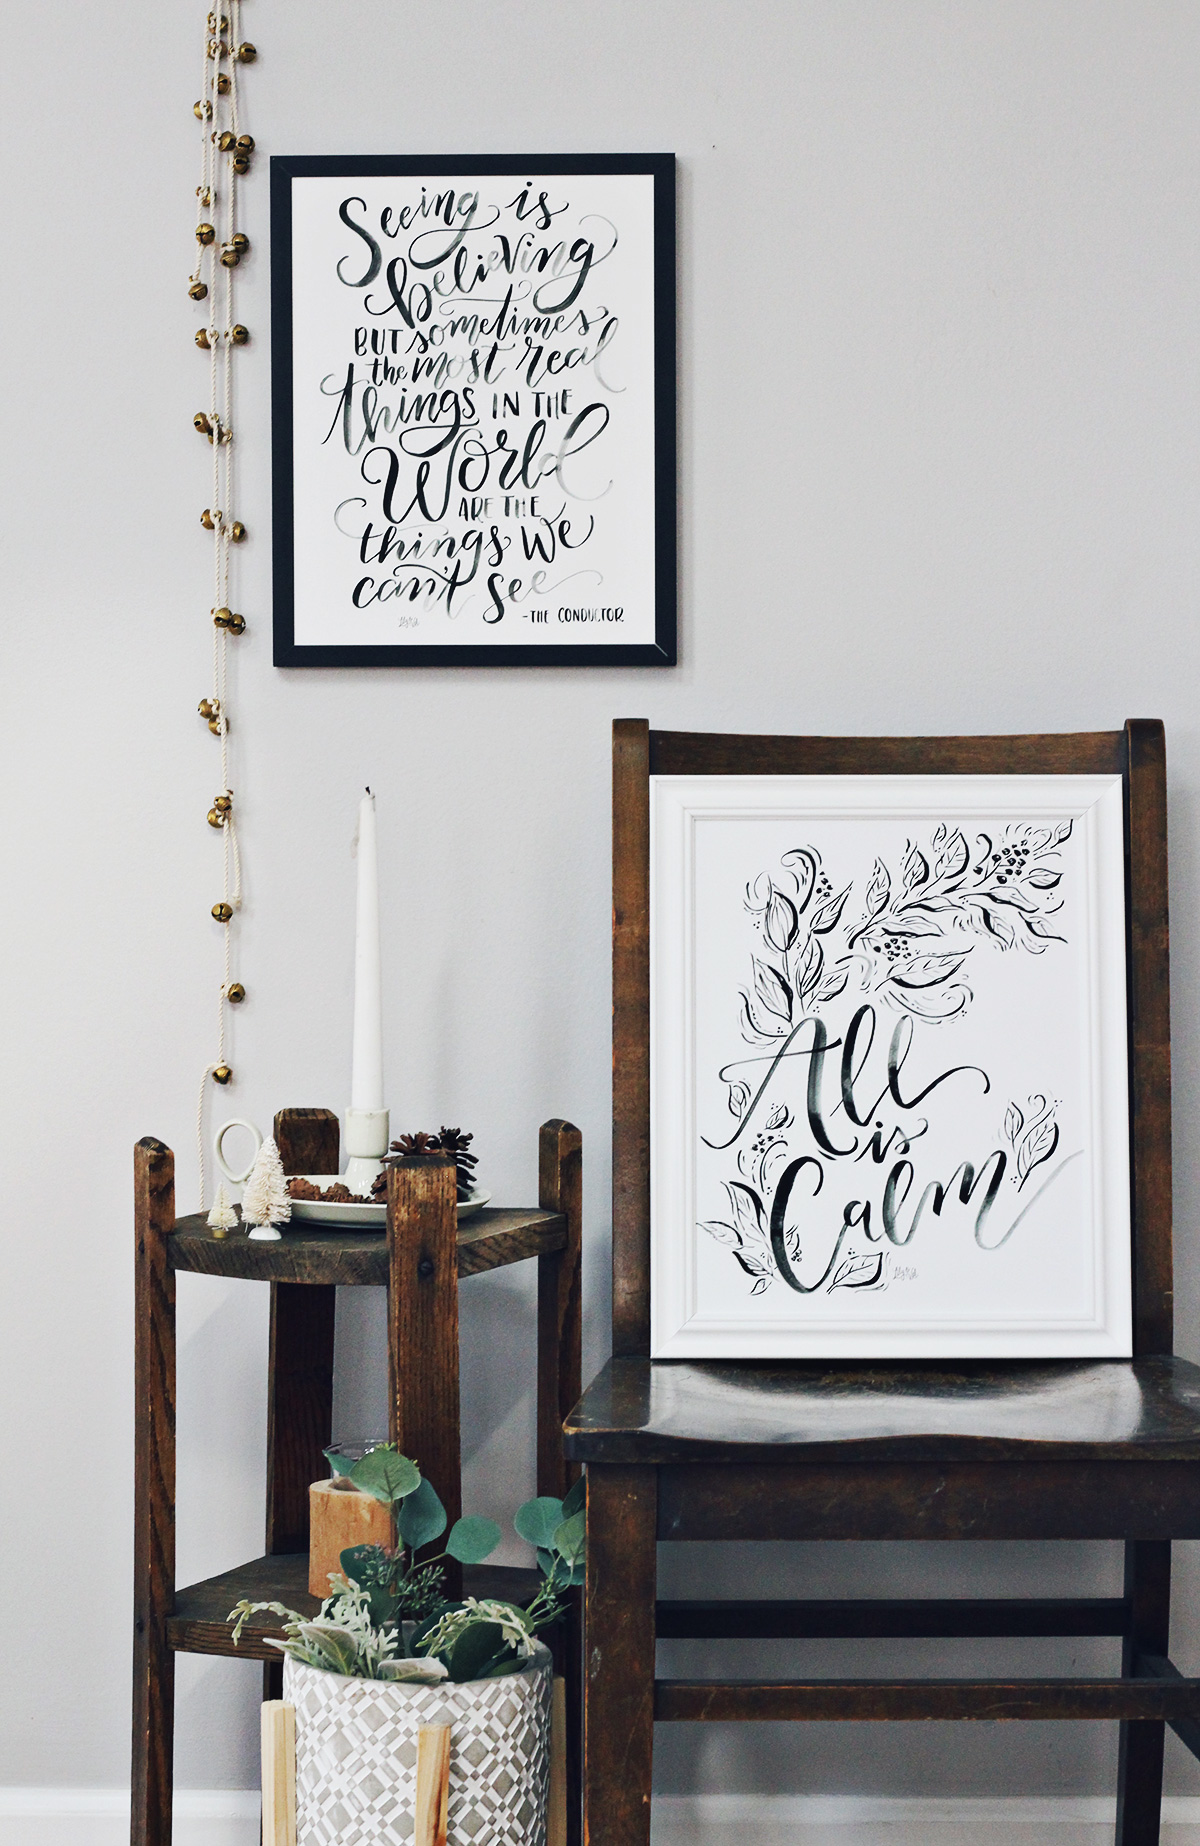 Black and white Christmas Decor for neutral, modern spaces this holiday season